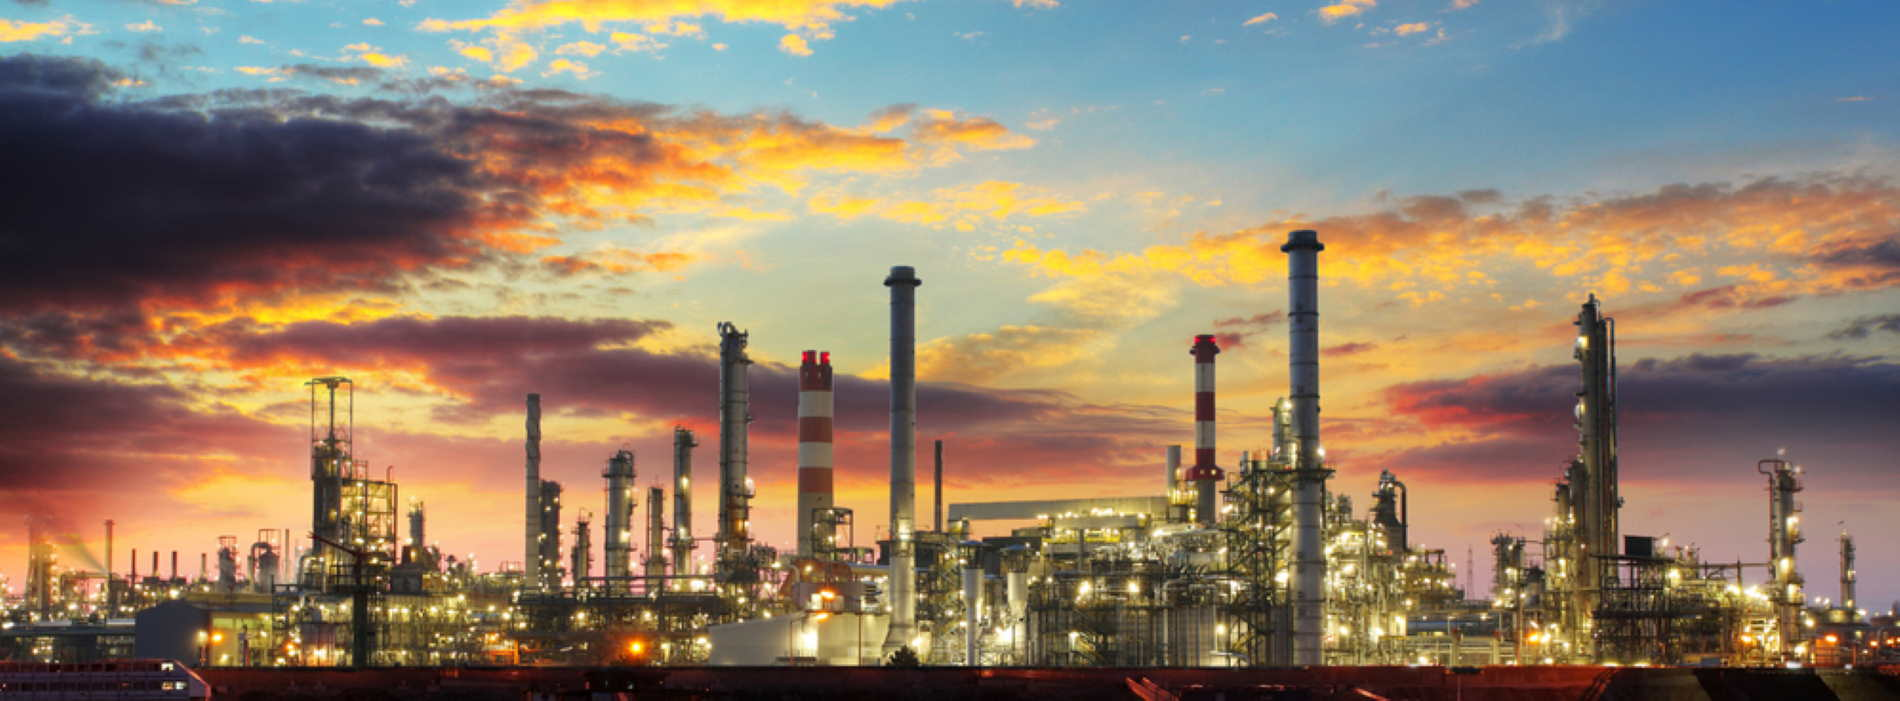 Header image: Petro-chemical industry - source Shutterstock